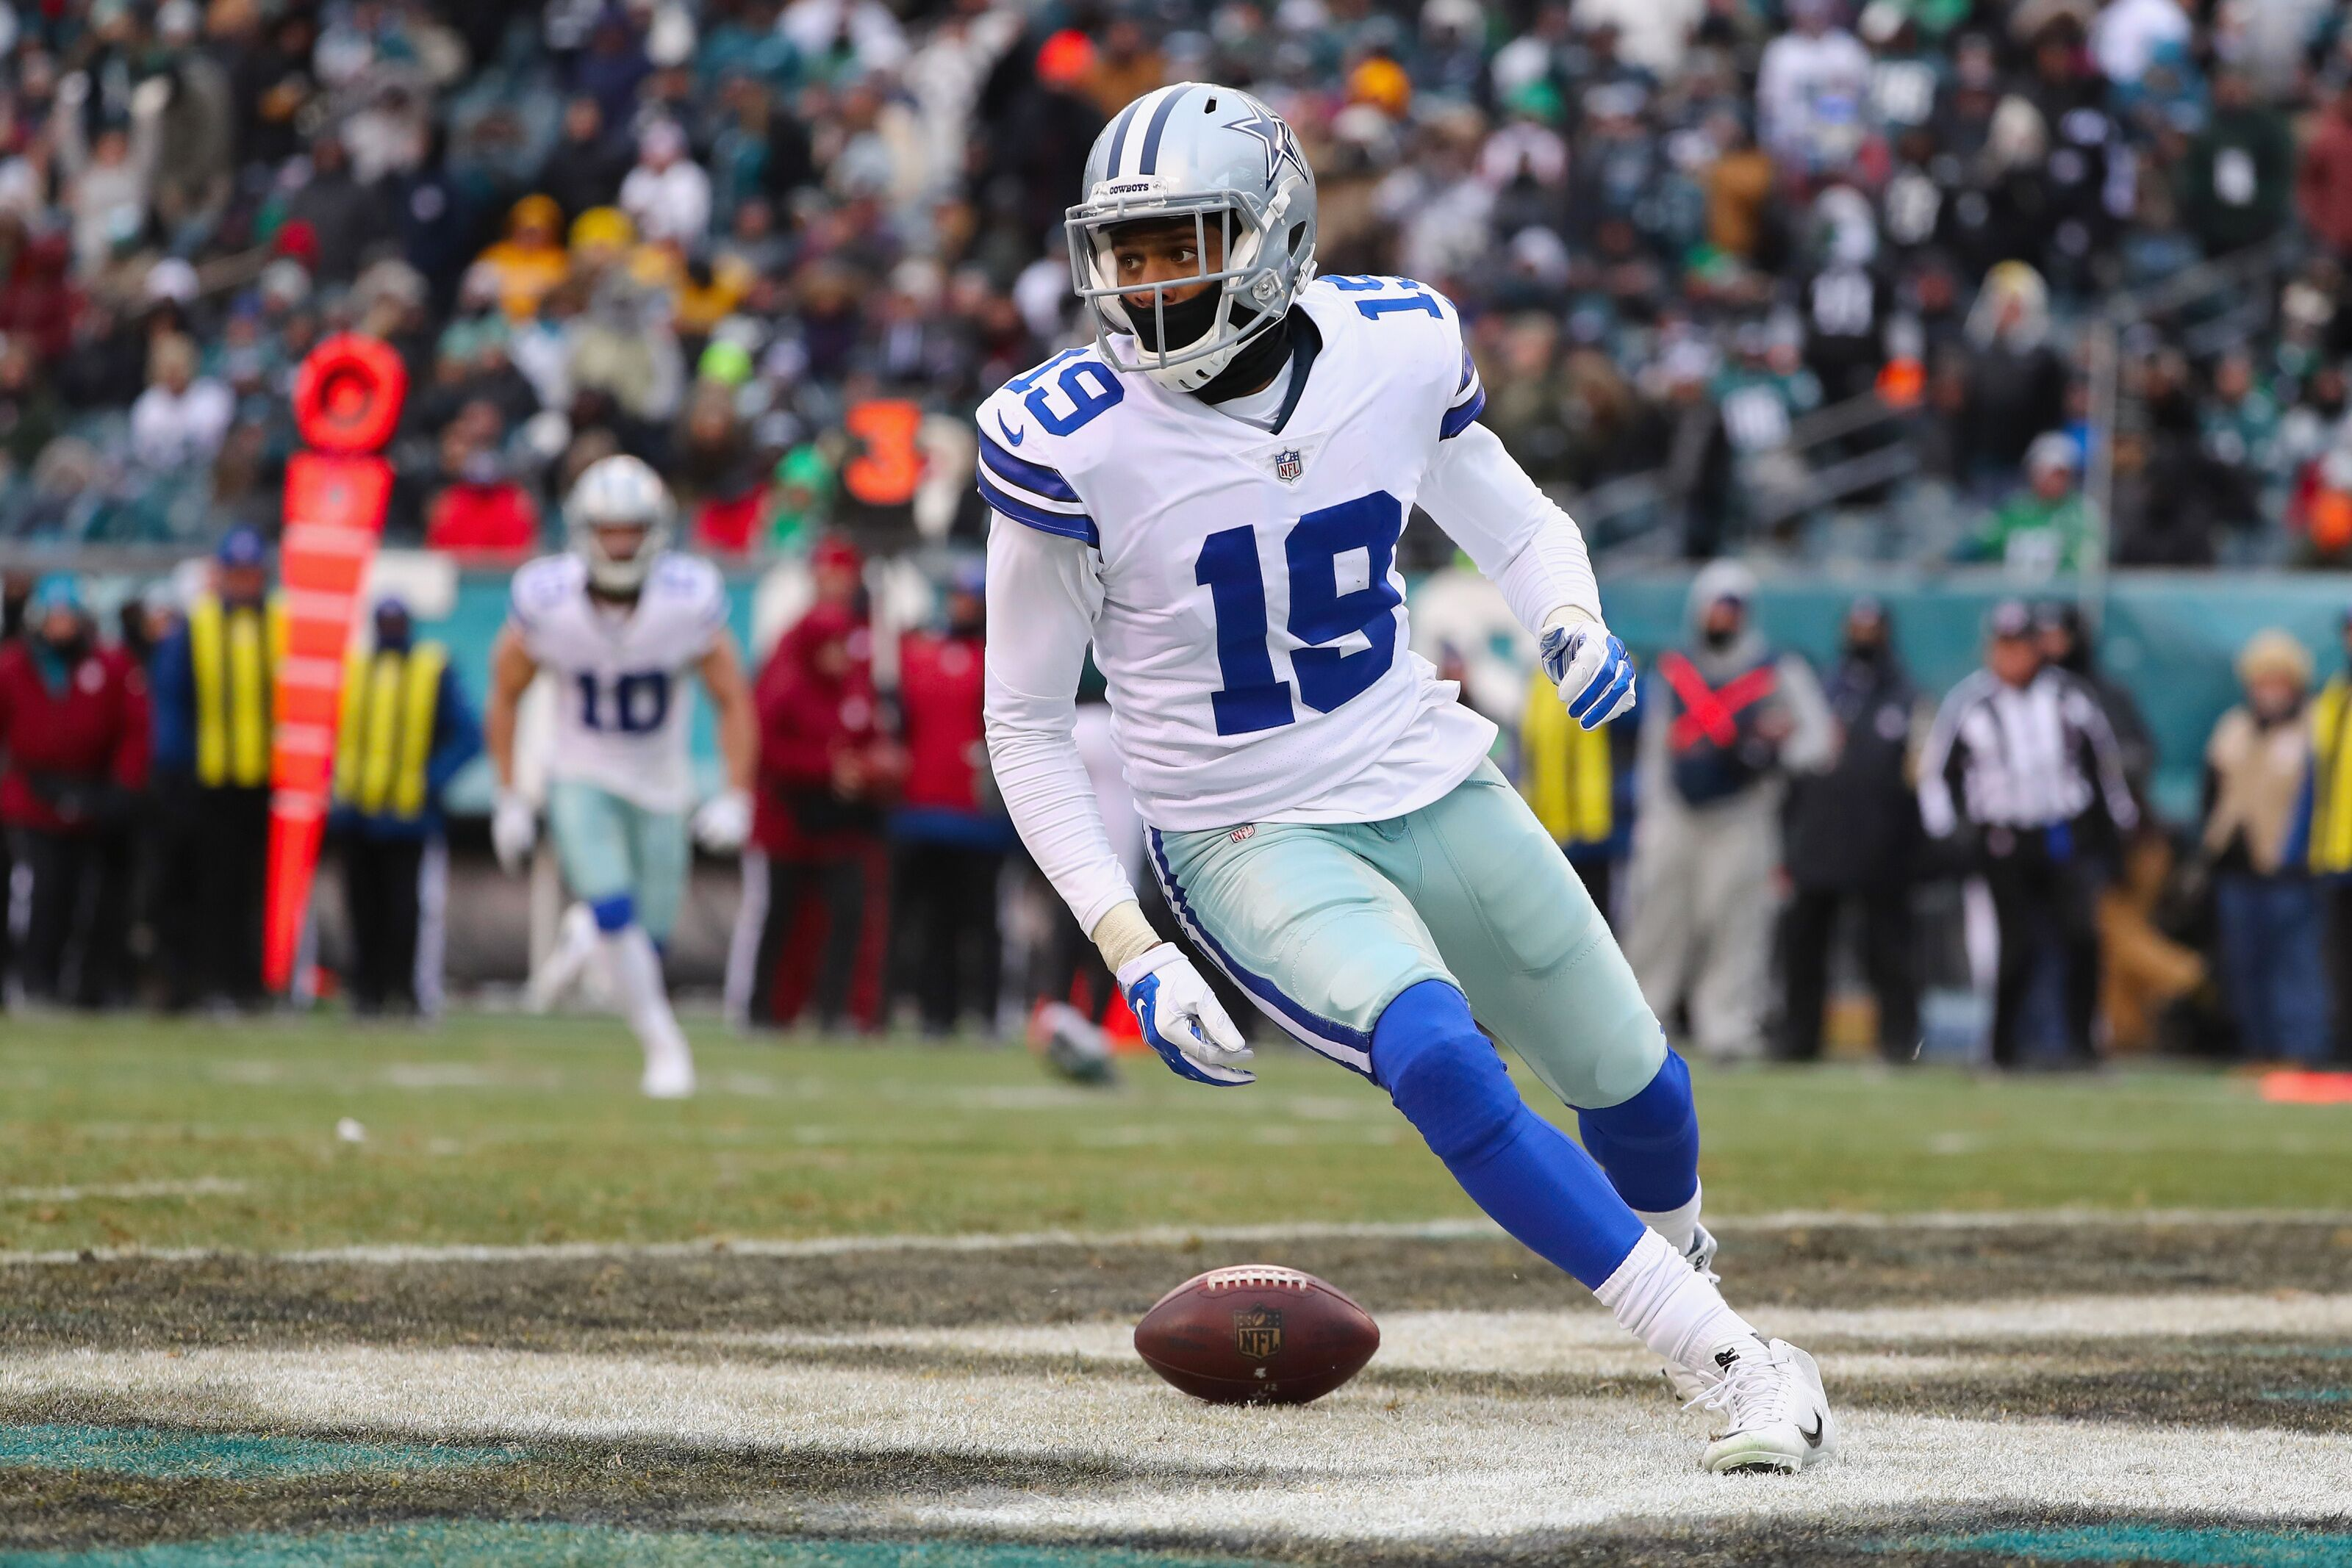 d6bfe61aa9d Dallas Cowboys: Brice Butler announces his return, but why?